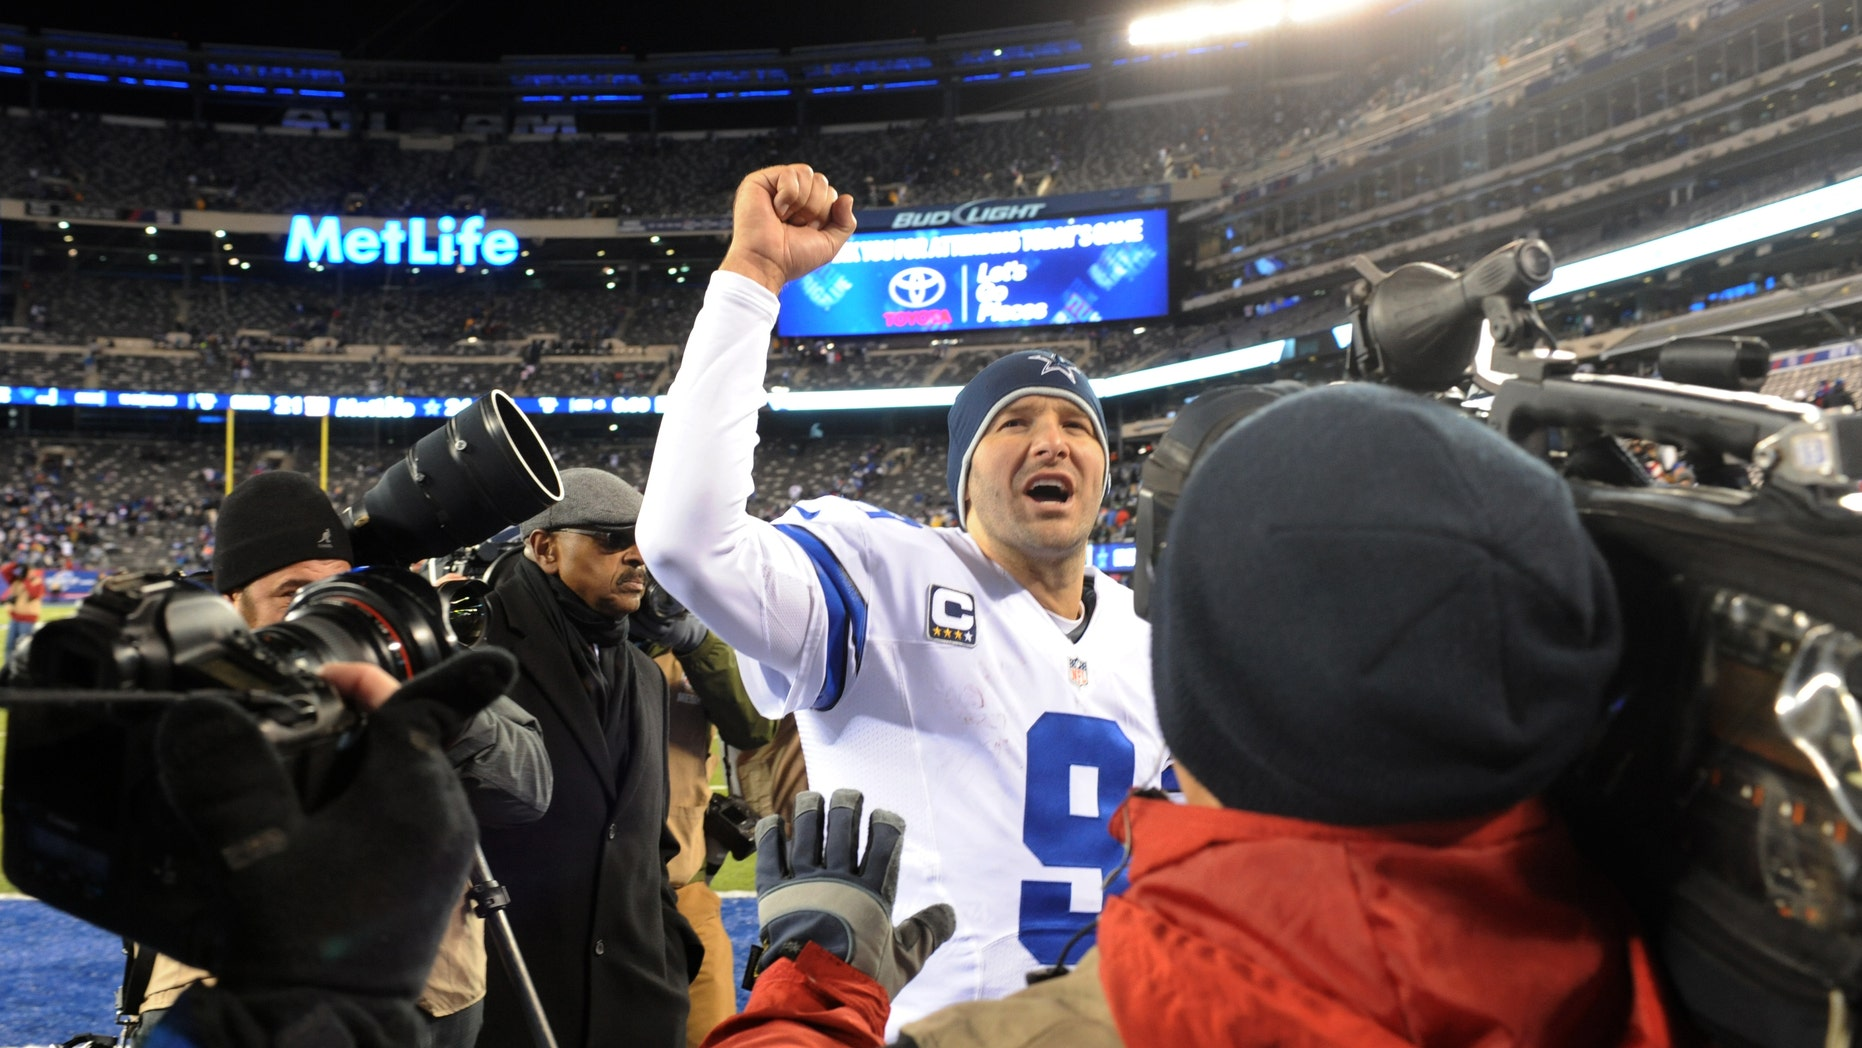 File - In this Nov. 24, 2013 file photo, Dallas Cowboys quarterback Tony Romo (9) gestures while leaving the field after defeating the New York Giants 24-12 in an NFL football game, in East Rutherford, N.J. The winter blast that hit North Texas forced the Cowboys indoors when they were hoping to keep working outside in preparation for a bitterly cold Monday night in Chicago. The Cowboys don't mind practicing in the elements because it worked pretty well leading up to a frigid win at the New York Giants two weeks ago. (AP Photo/Bill Kostroun, File)